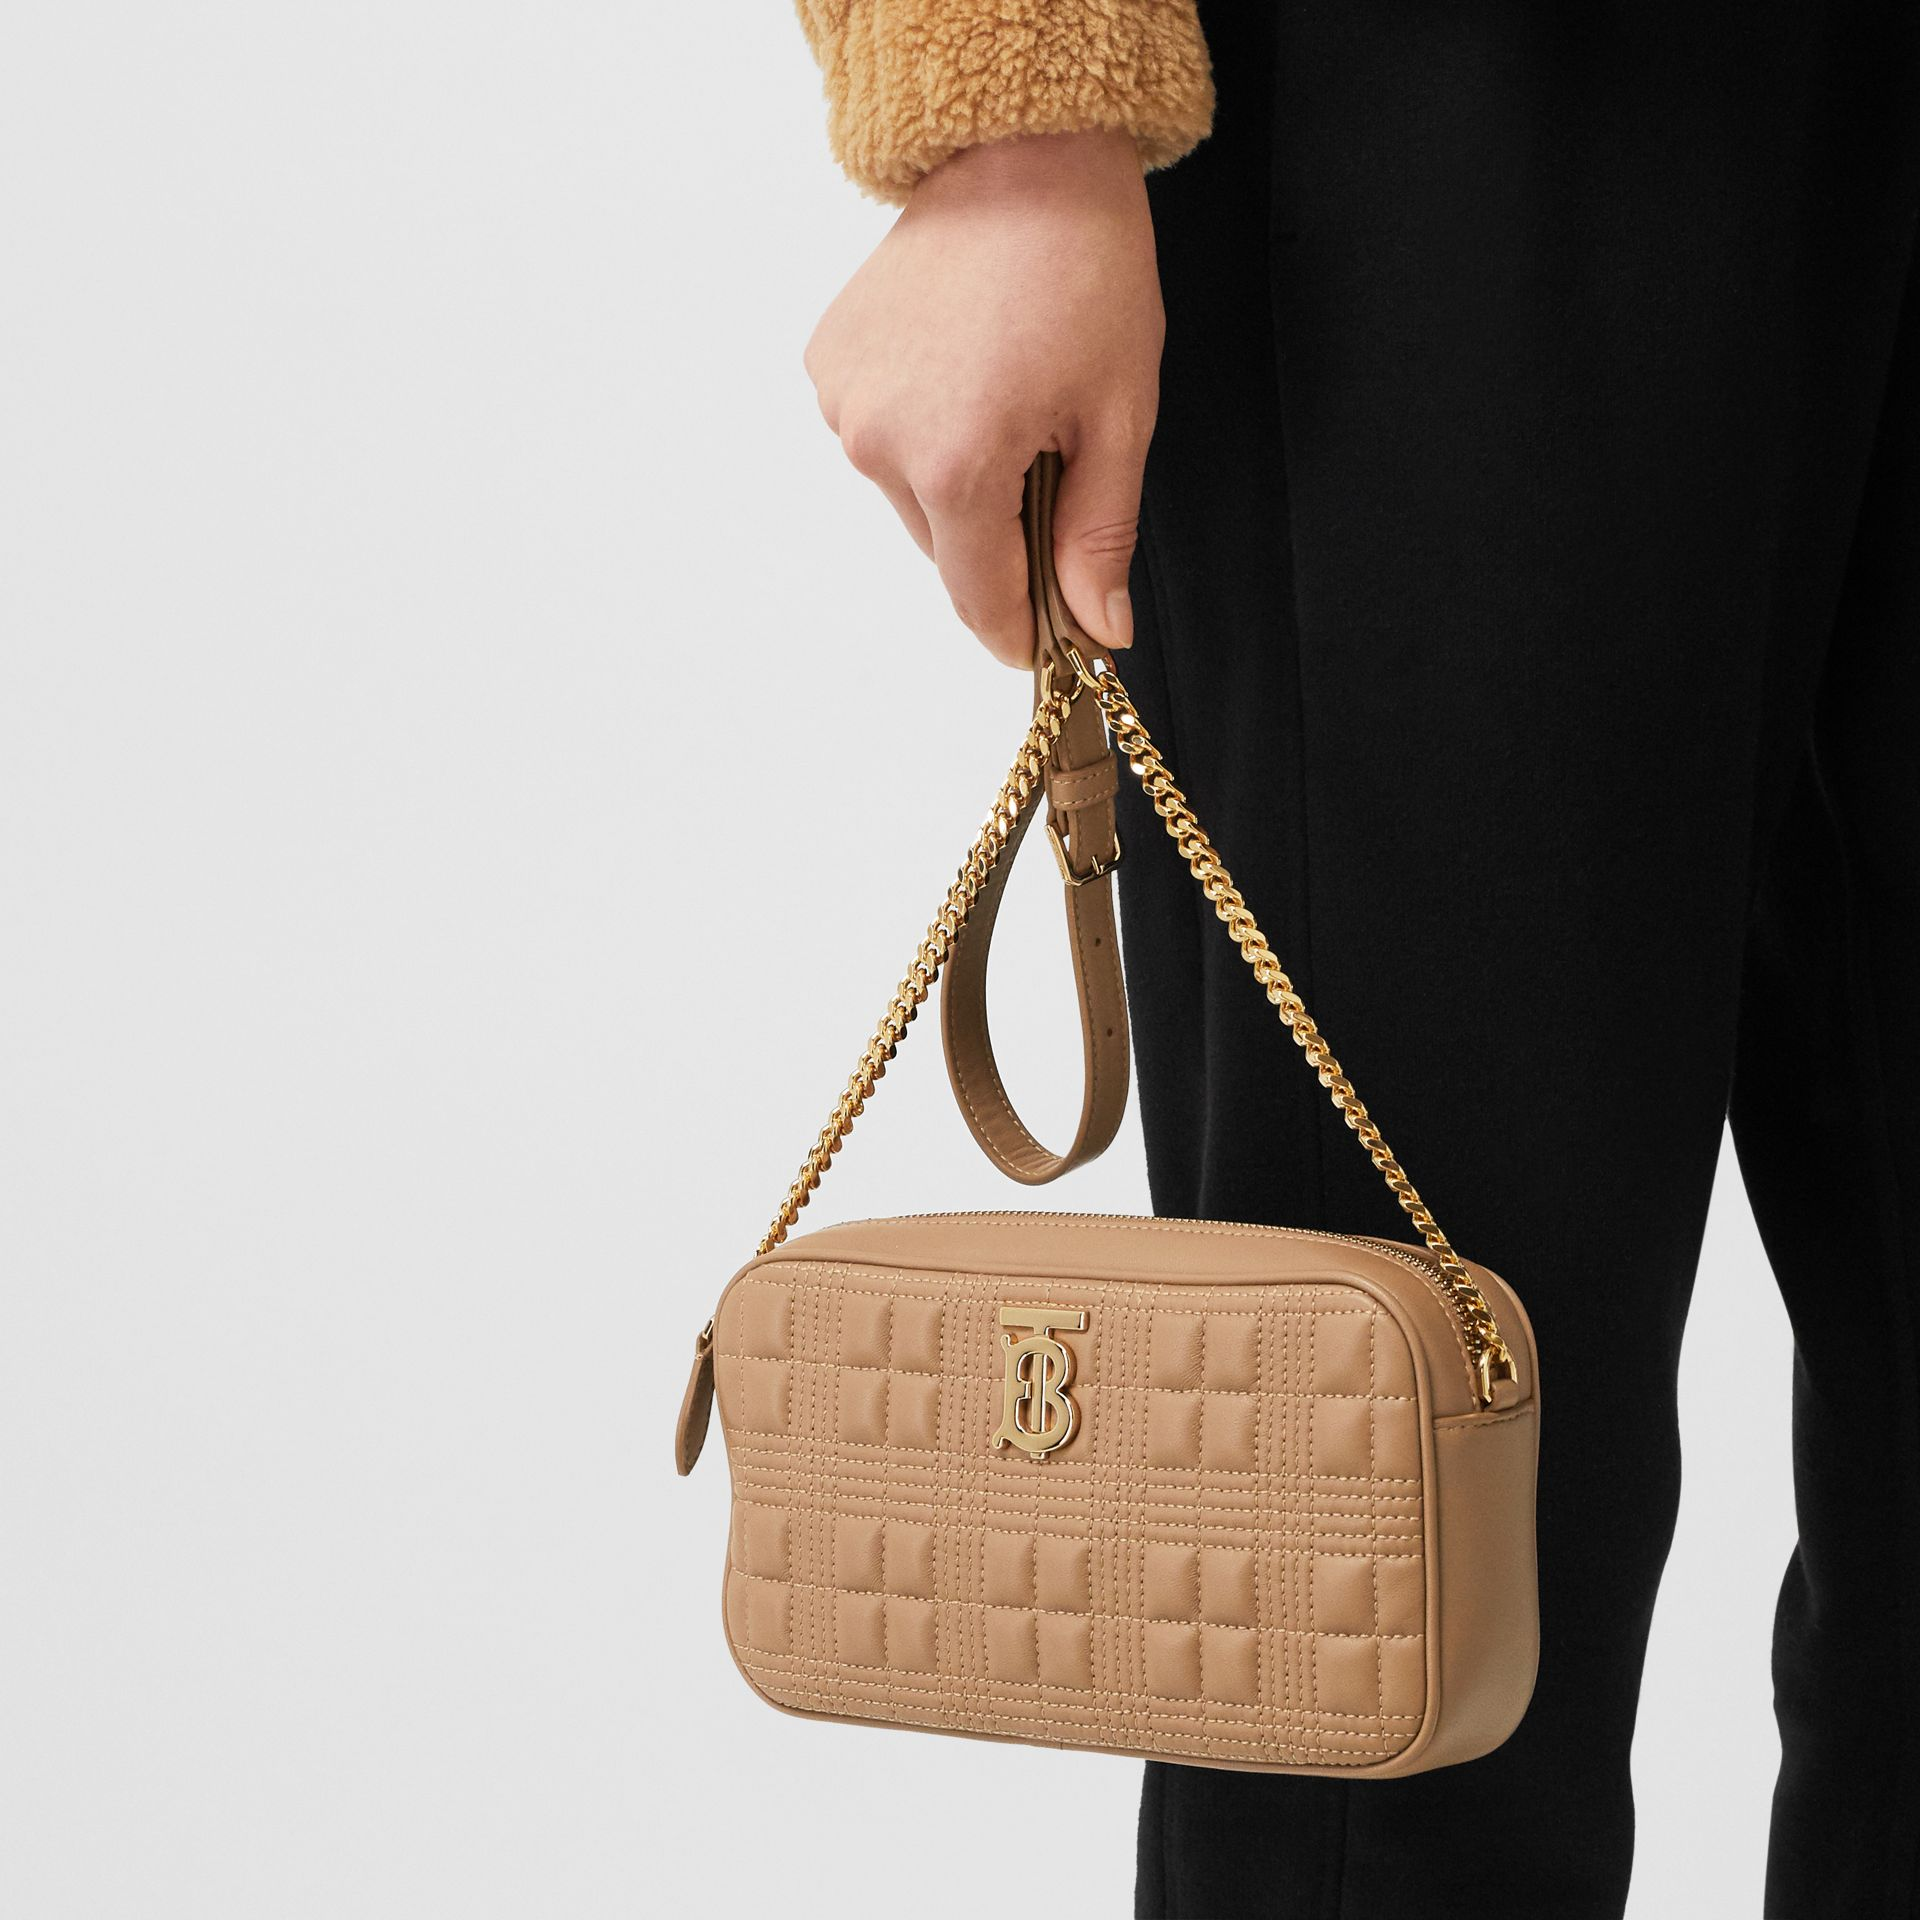 Quilted Lambskin Camera Bag in Camel - Women | Burberry - gallery image 8